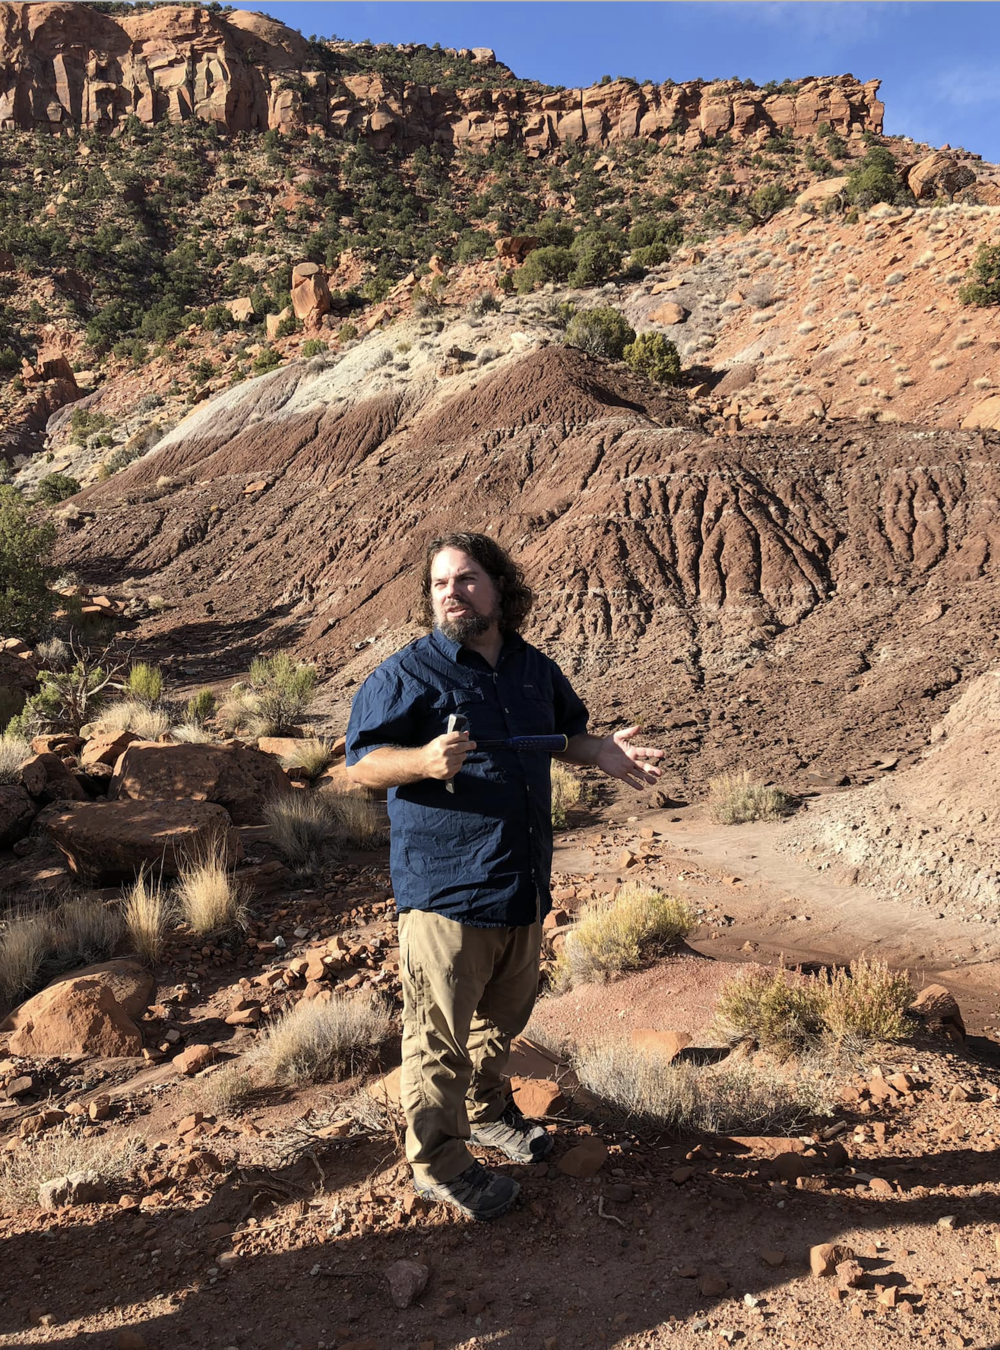 Earth Science Lecture Series - The Dawn of the Age of Dinosaurs on the Western Slope